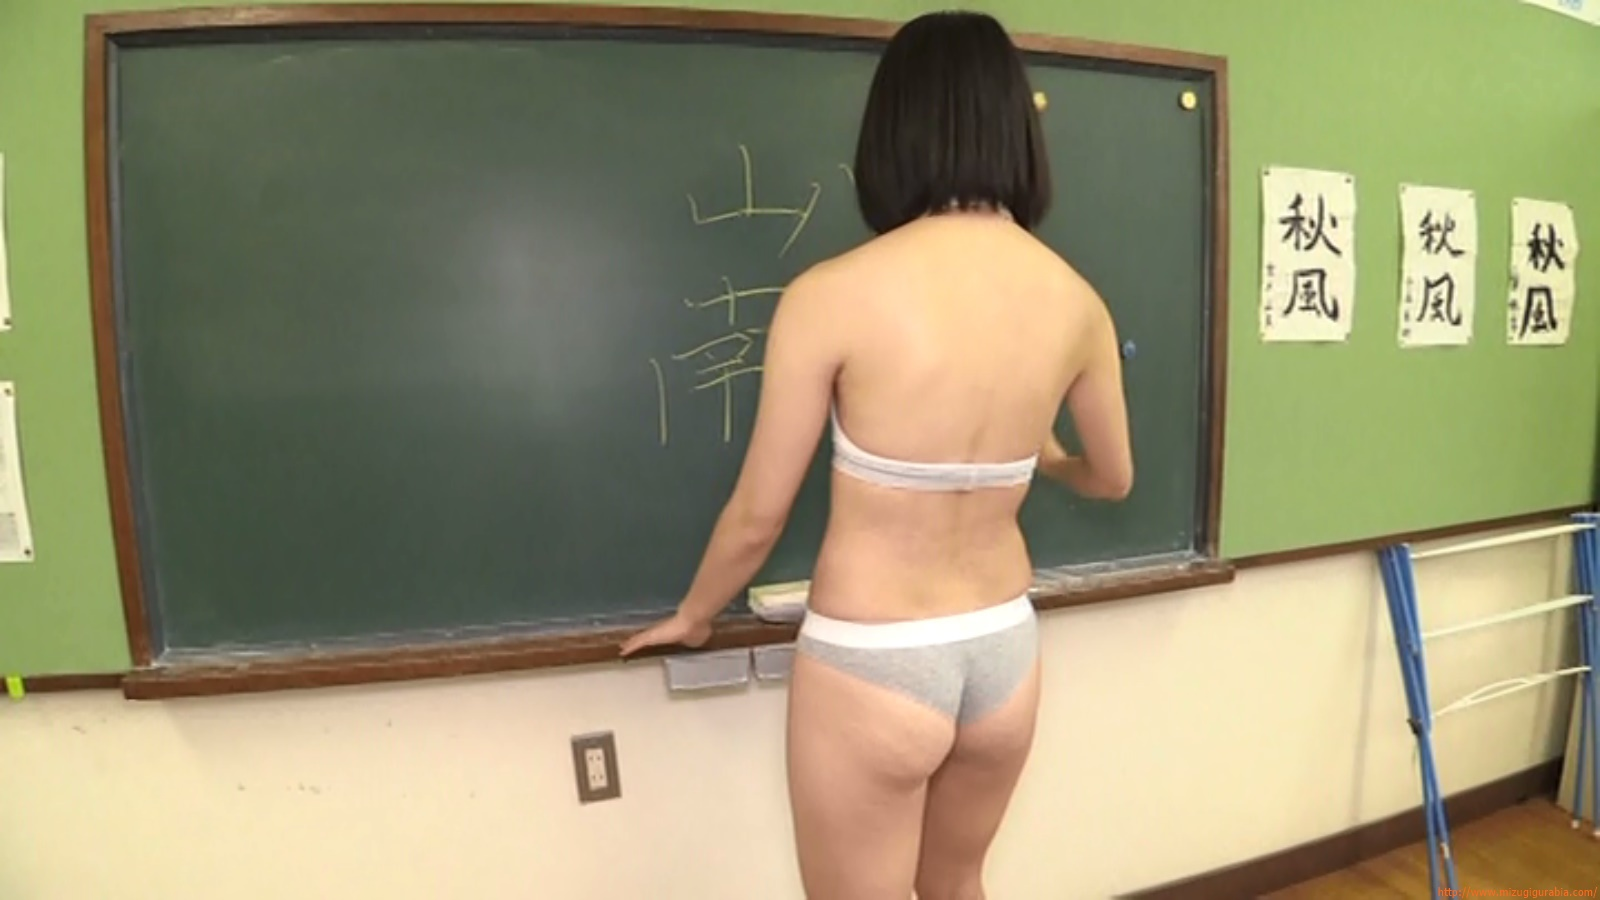 Two-person classroom312